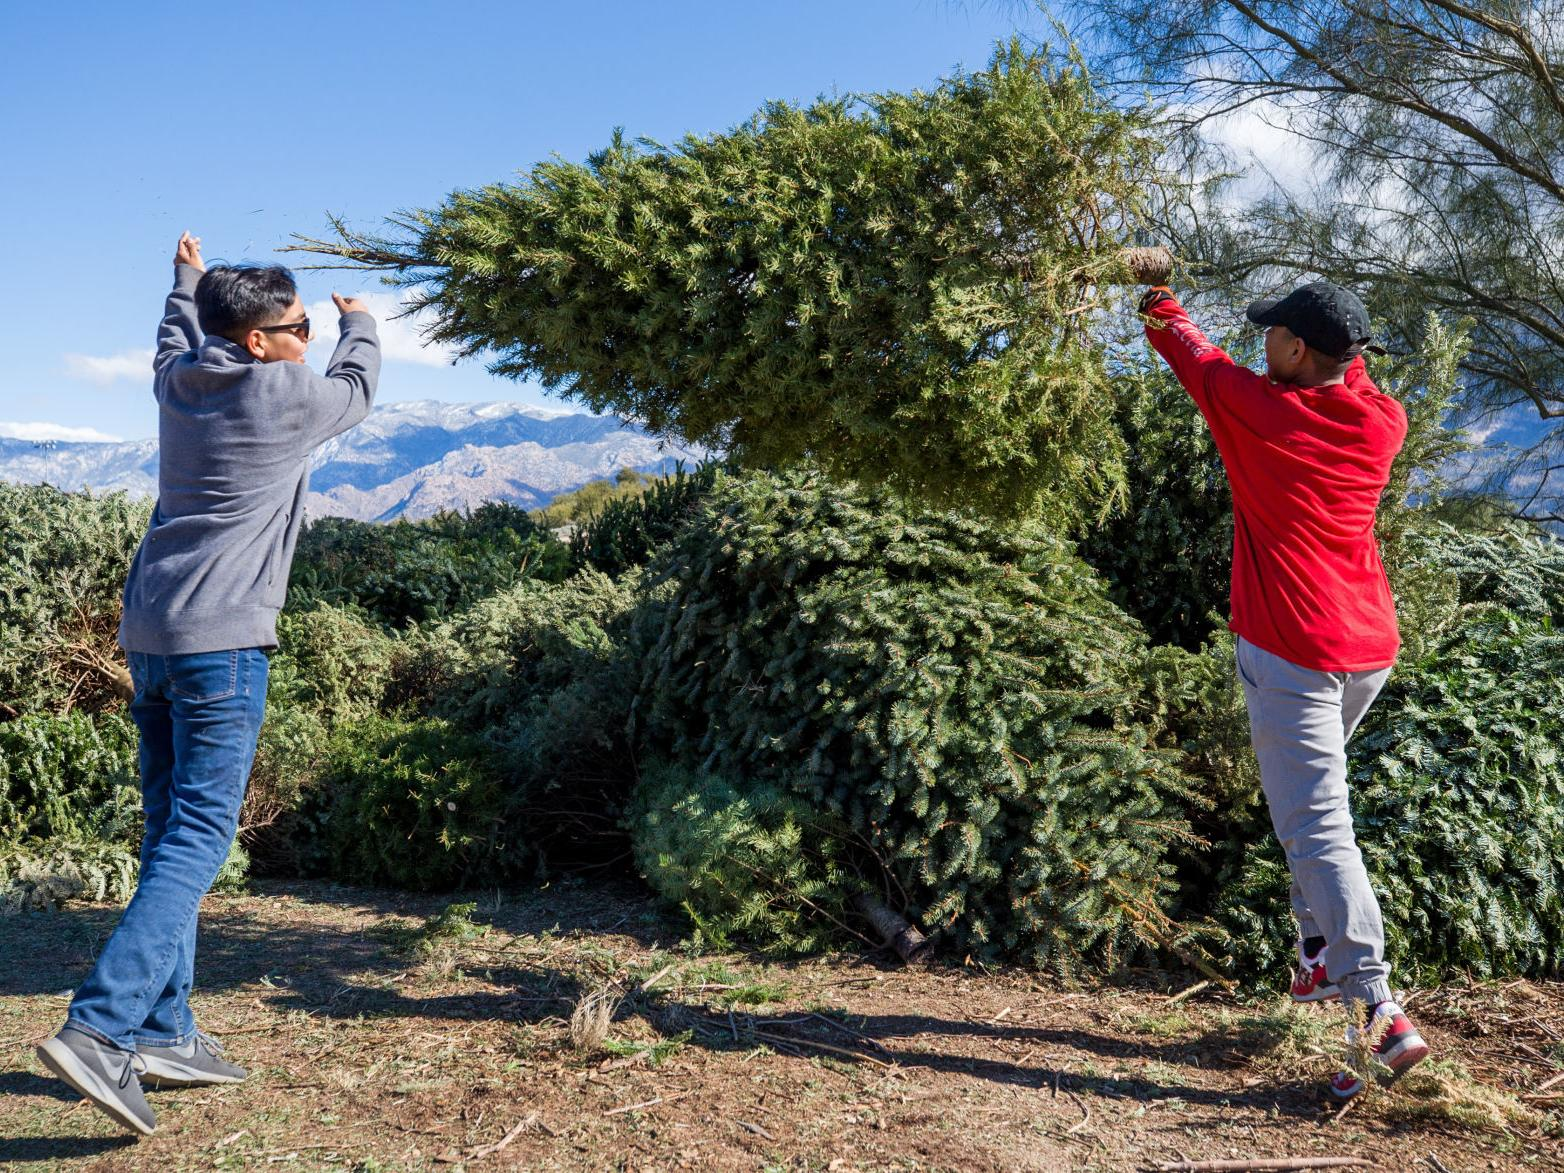 Christmas Tree Recycling Tucson 2020 Sites open around Tucson to take discarded Christmas trees for